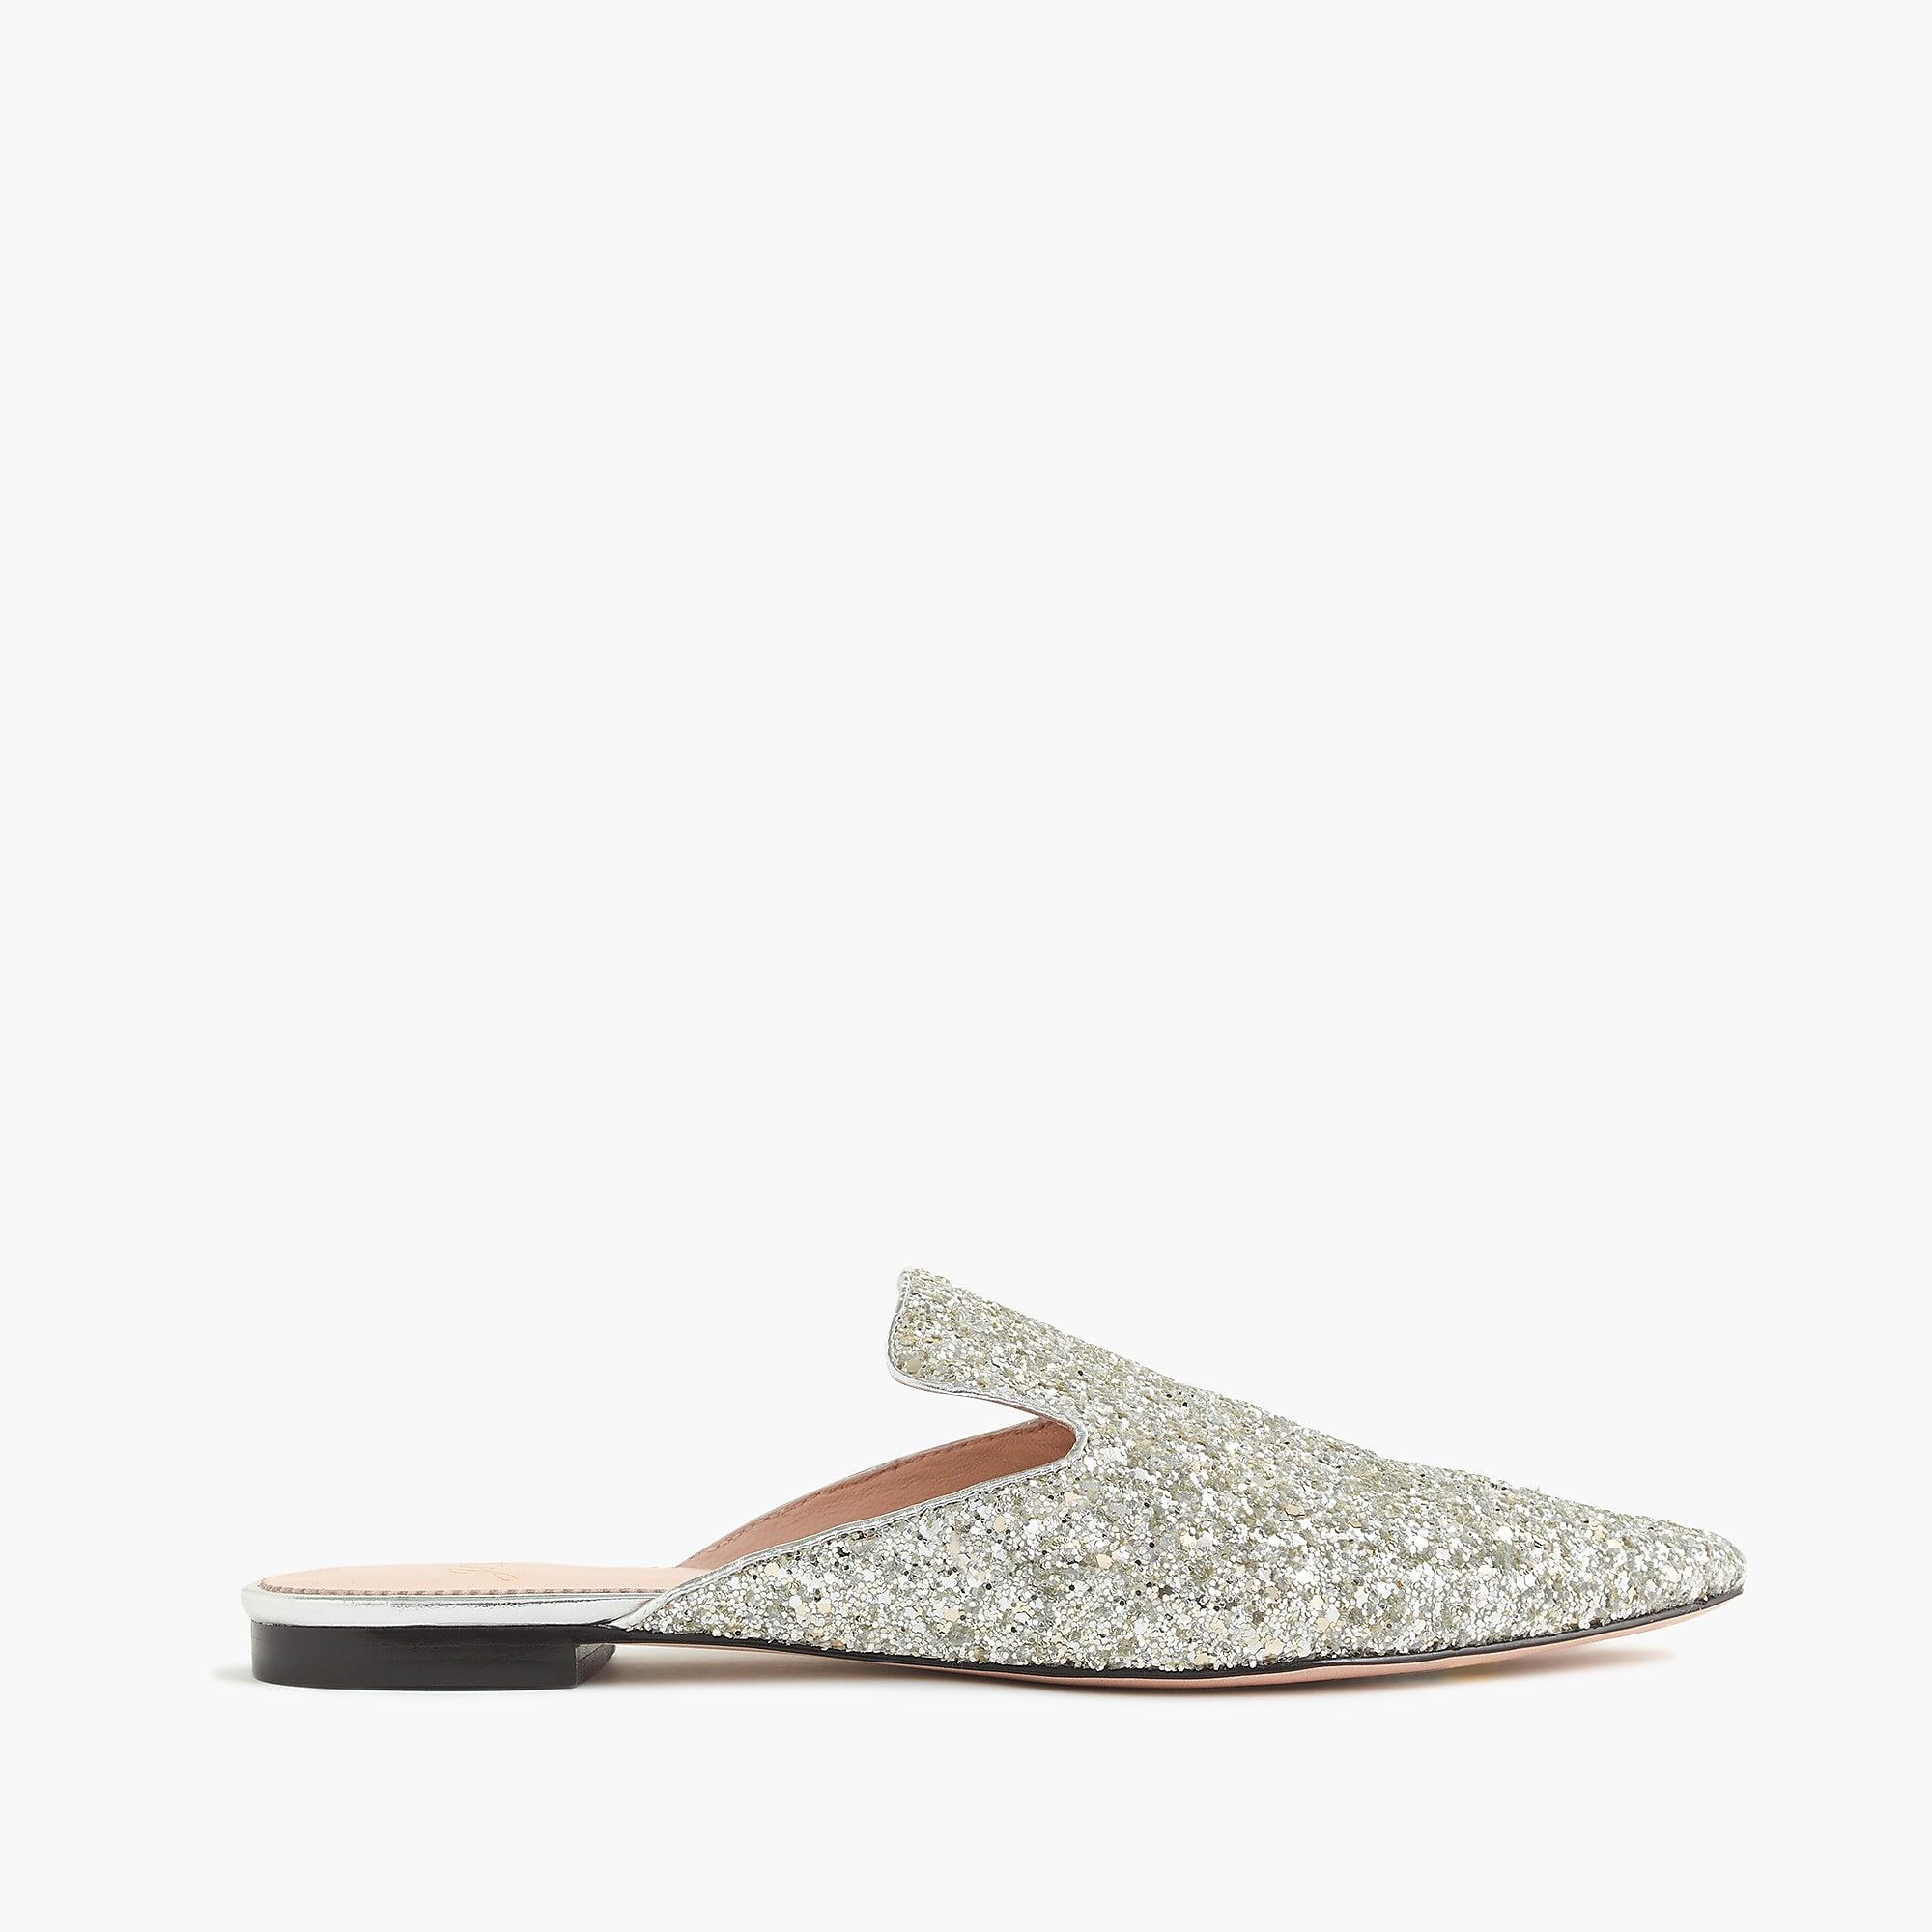 J.Crew Leather Pointed-toe Slides In